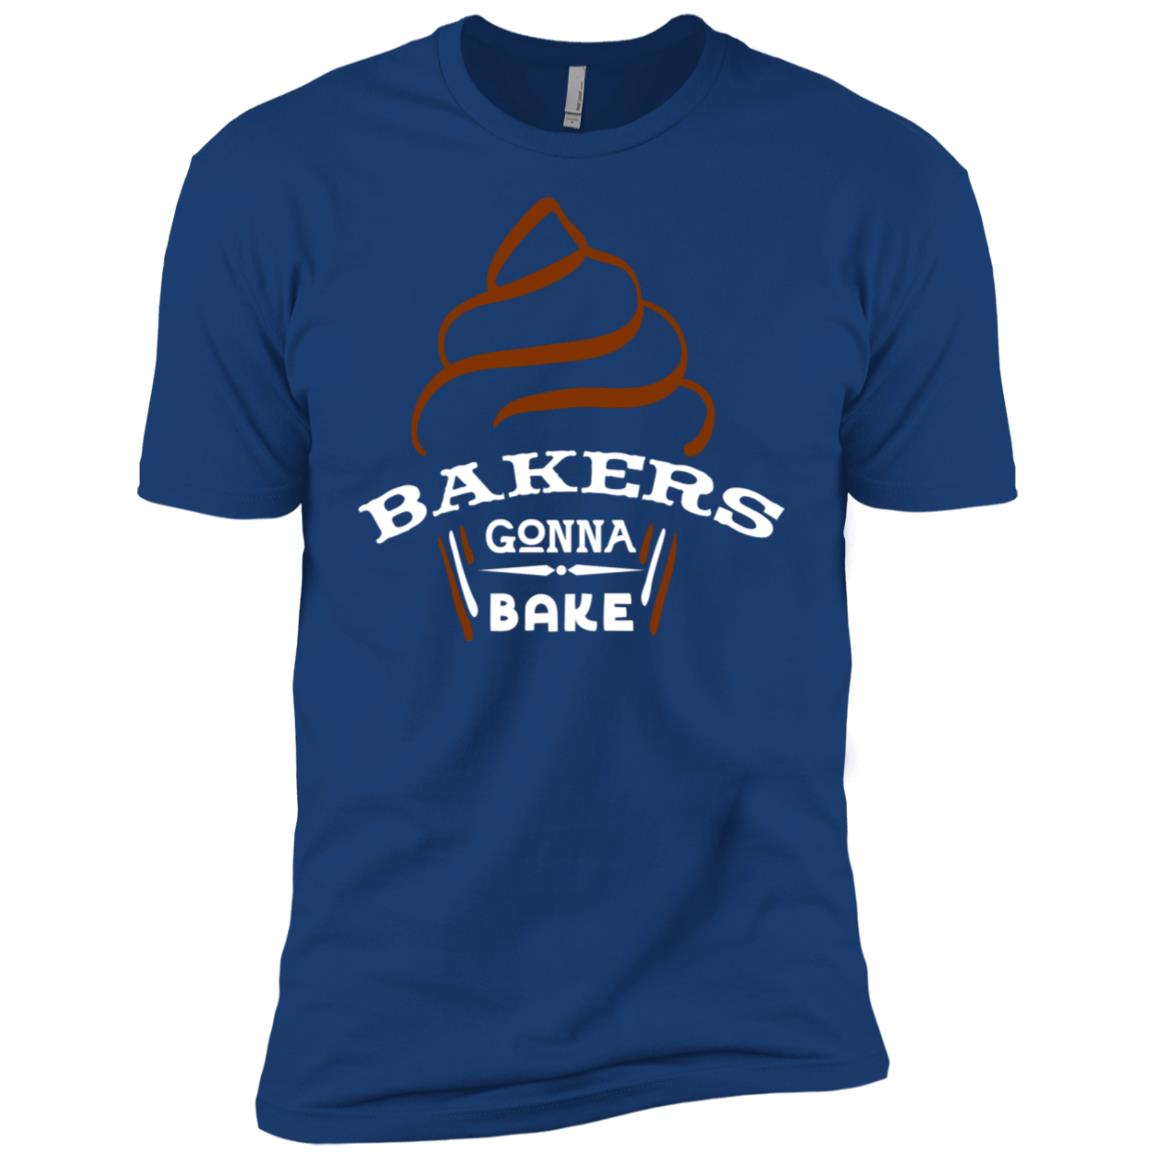 Bakers Gonna Bake Men Short Sleeve T-Shirt